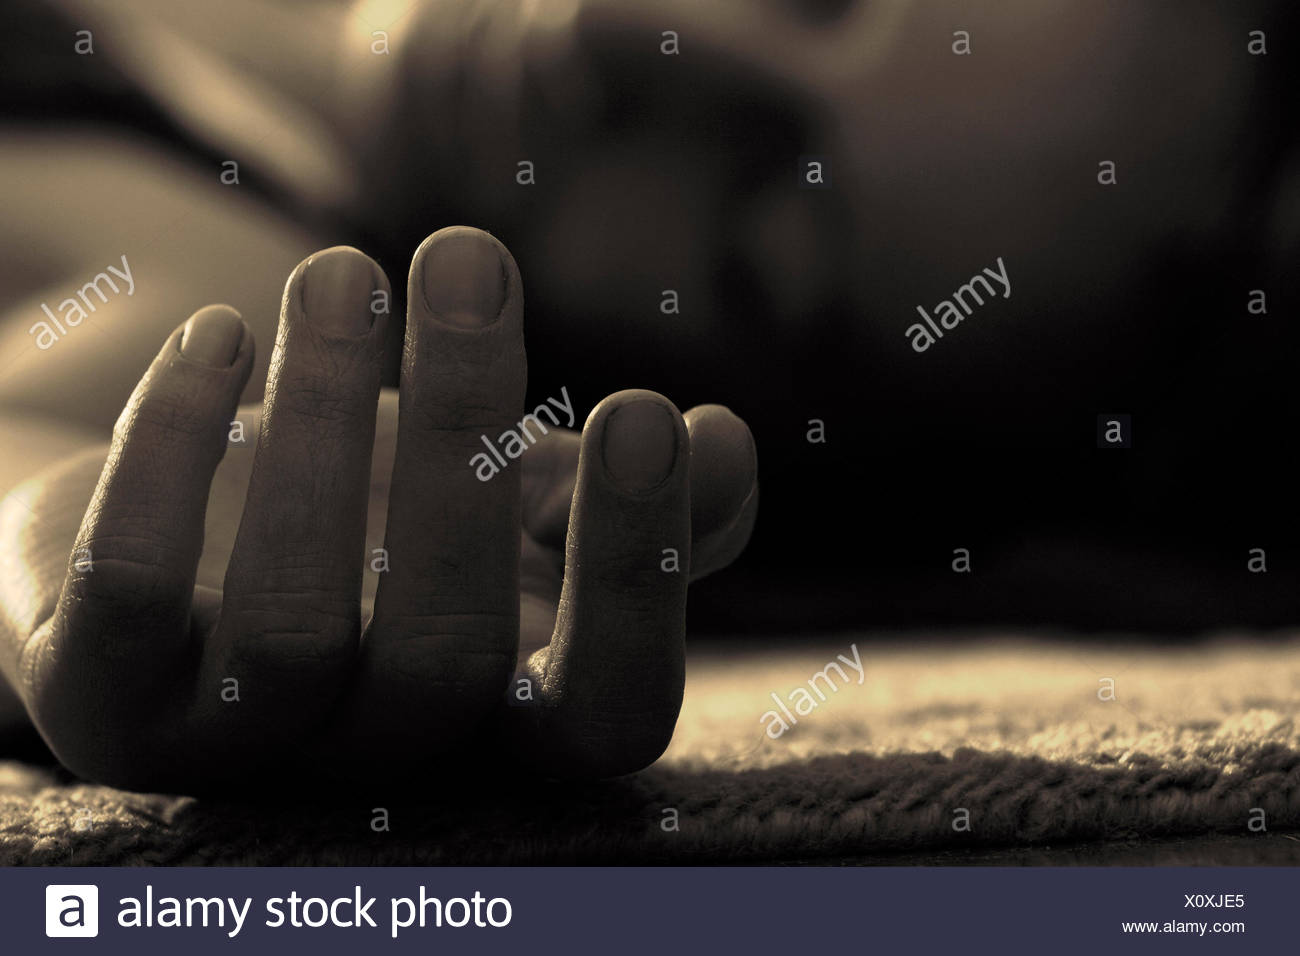 death,accident,lifeless,unconscious - Stock Image